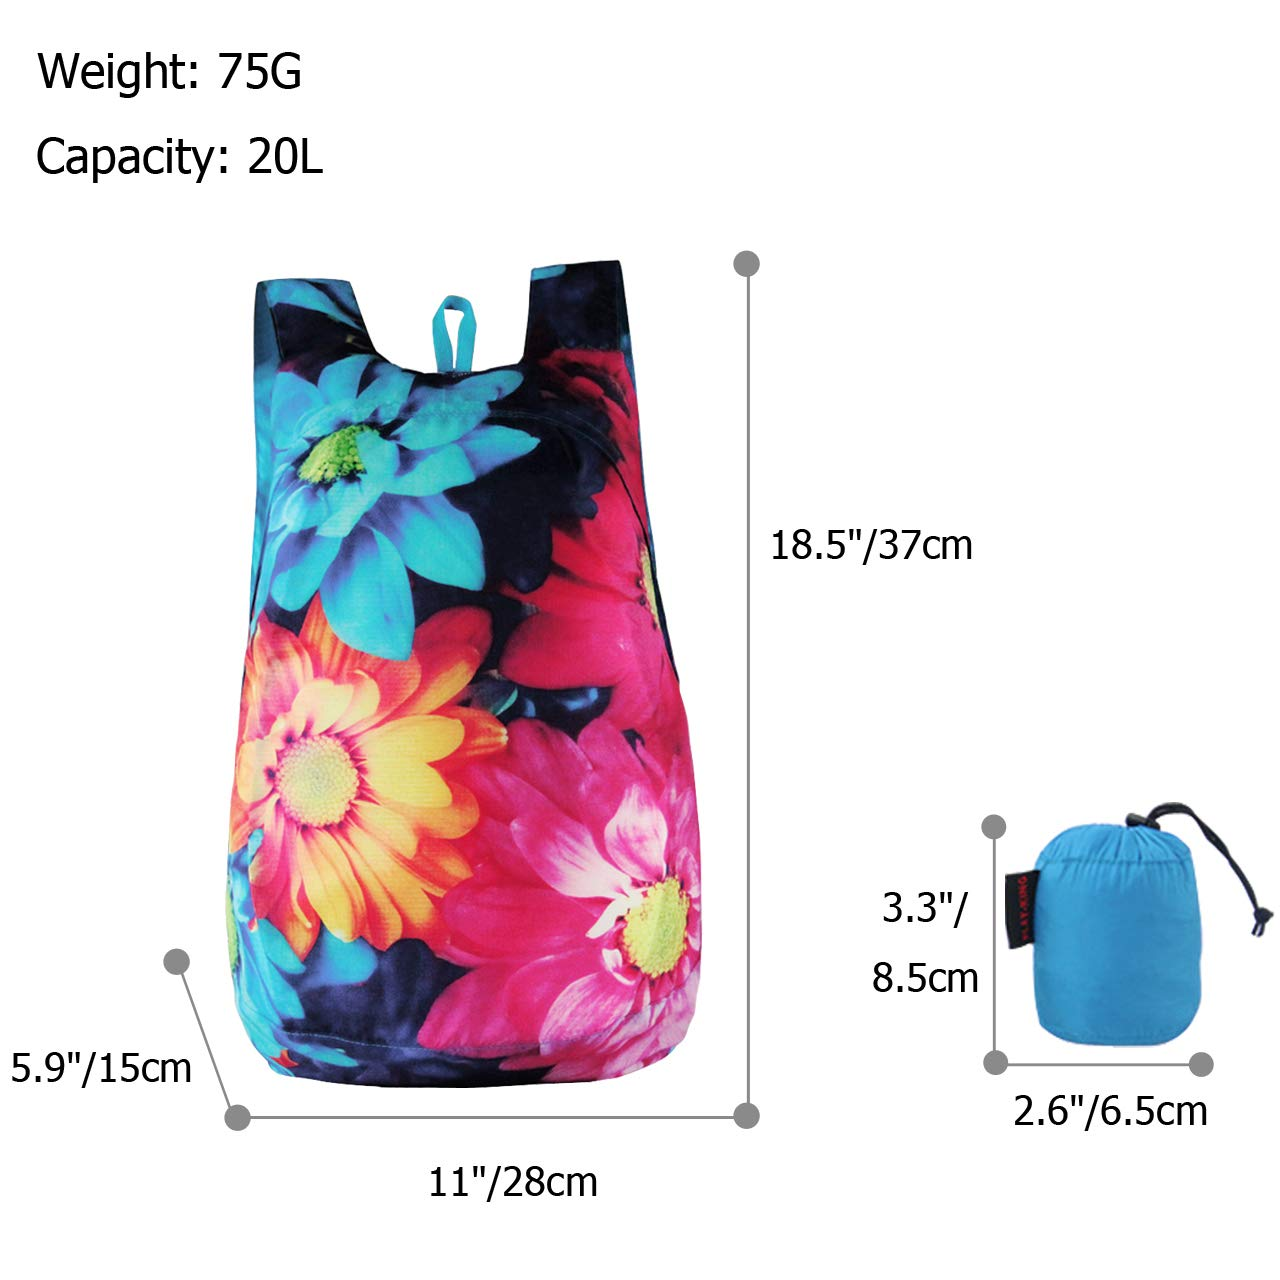 CHIC DIARY 3D Printed Packable Lightweight Travel Hiking Backpack Daypack (Flower(Rose))